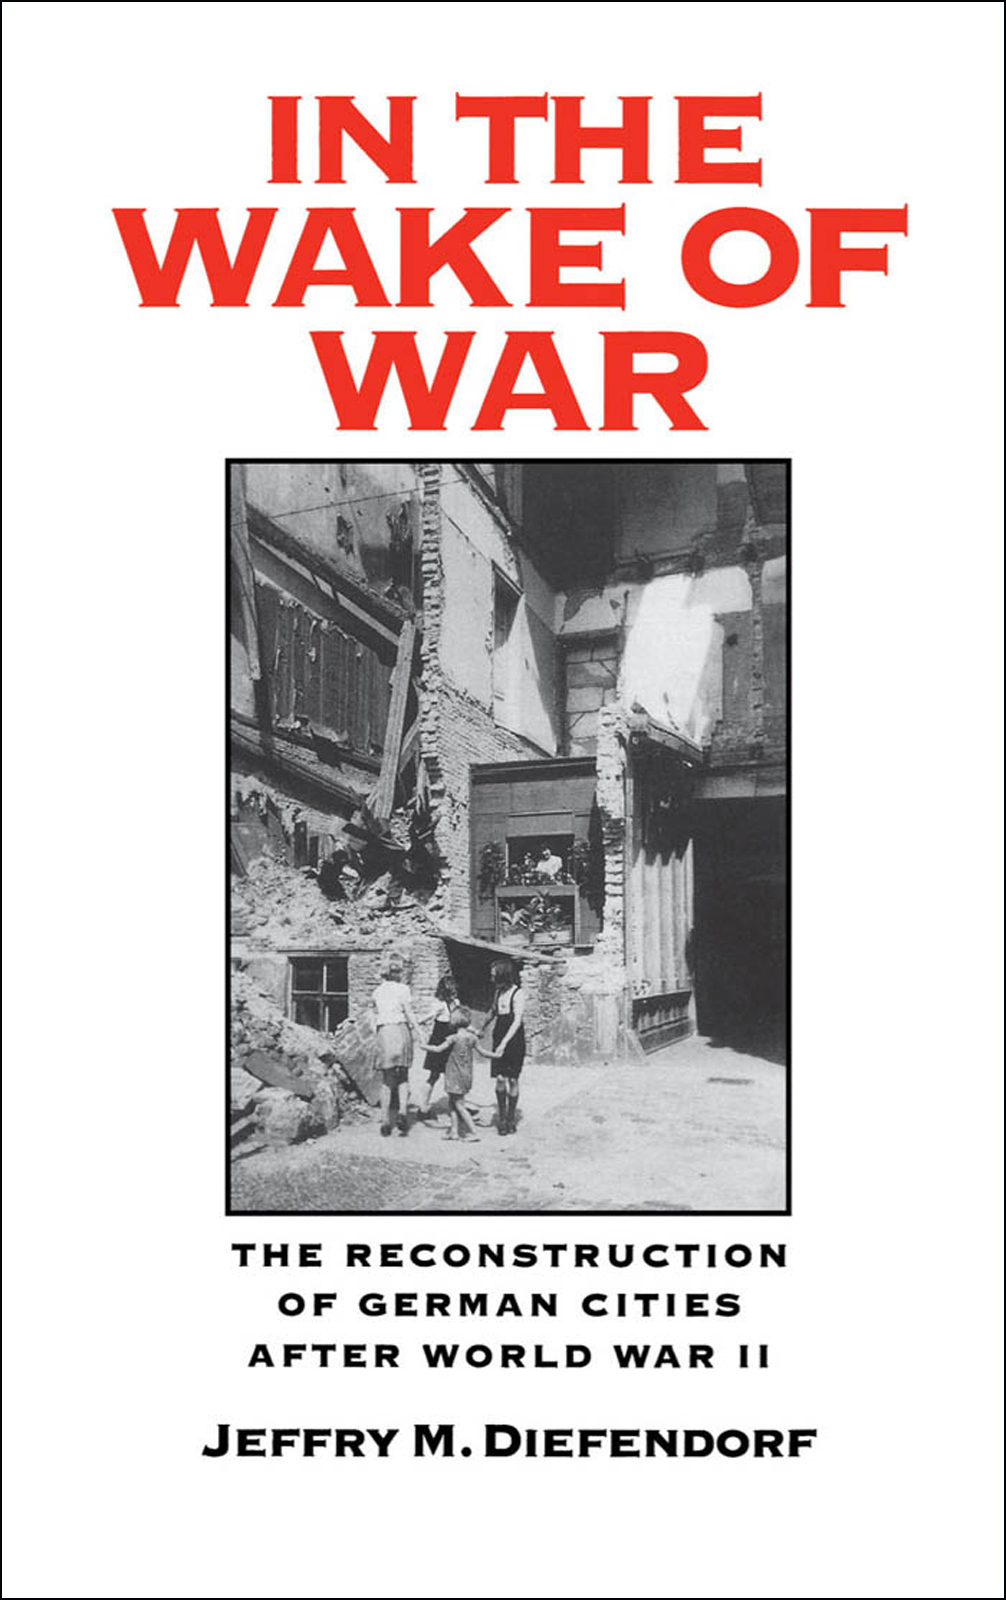 In the Wake of War:The Reconstruction of German Cities after World War II